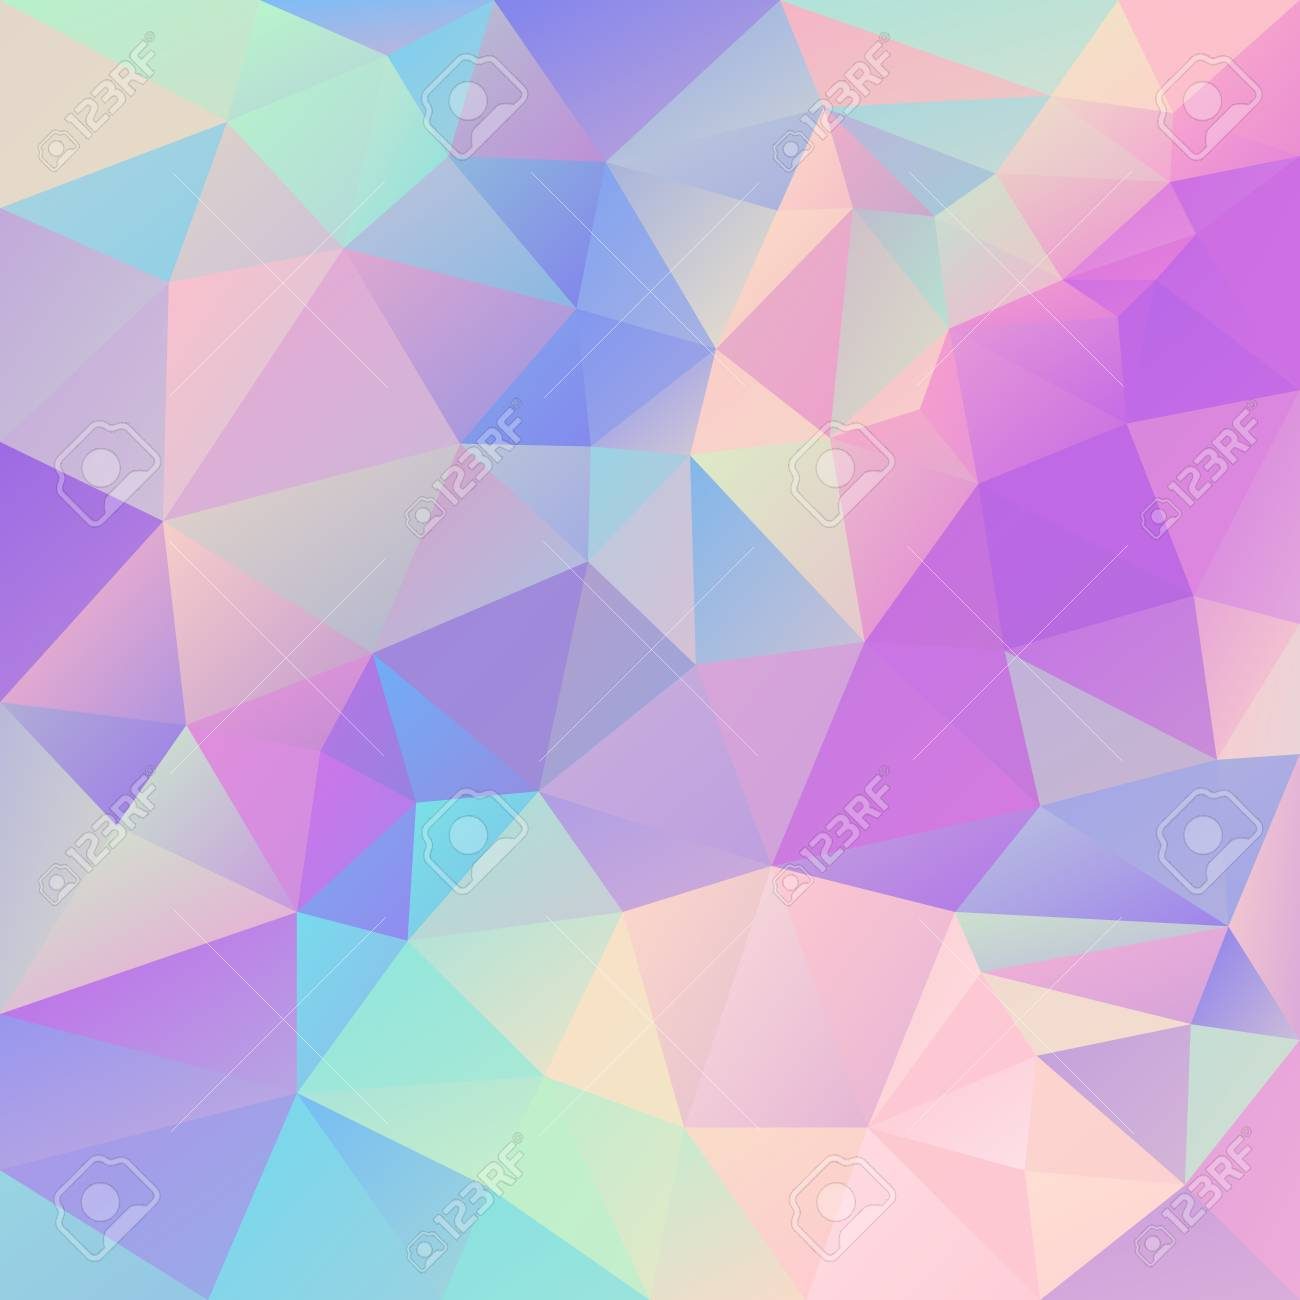 Vector Abstract Irregular Polygonal Background Cute Pastel Unicorn Royalty Free Cliparts Vectors And Stock Illustration Image 95710534